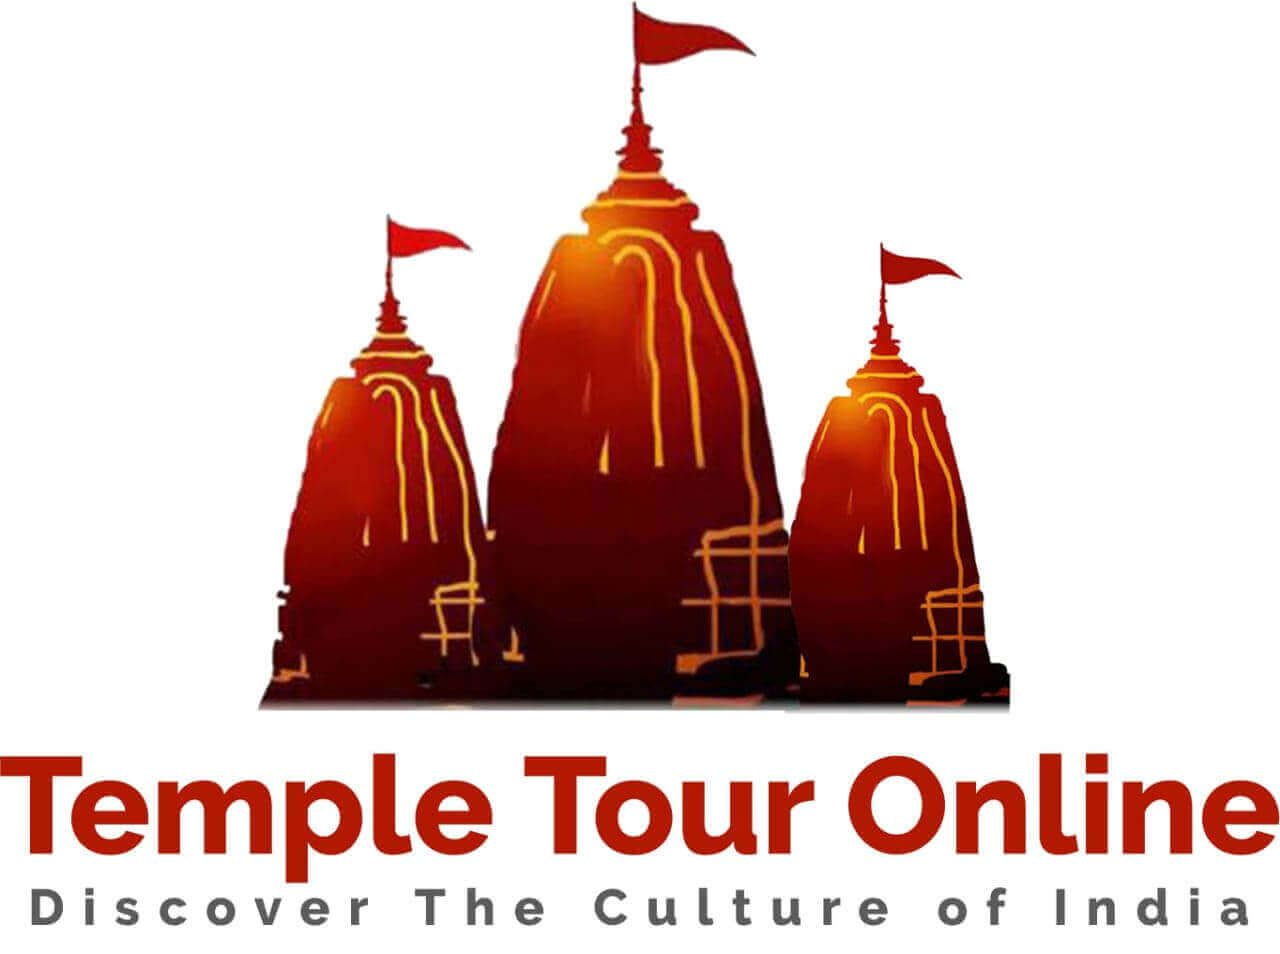 Temple Tour Online | Discover The Culture of India